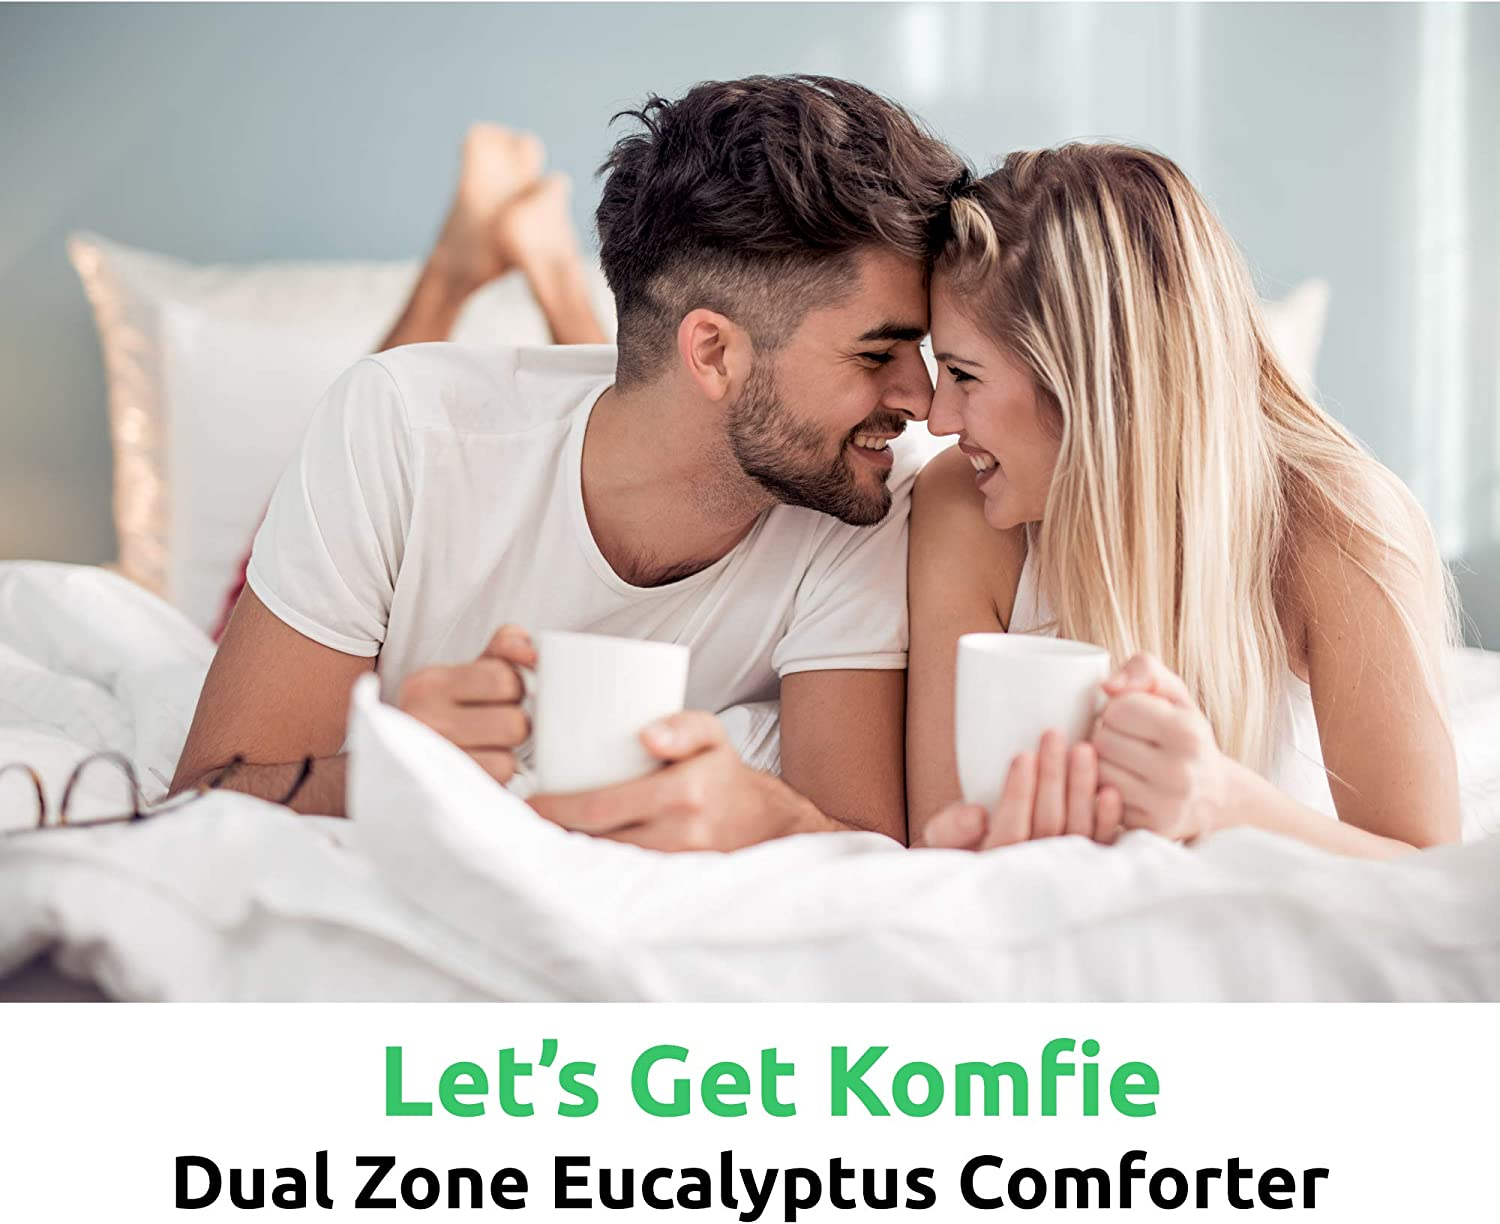 Dual Thickness Duvet Insert for Him and Her Eco Friendly 100/% Bamboo Comforter Queen, White Komfie Eucalyptus Comforter for Couples